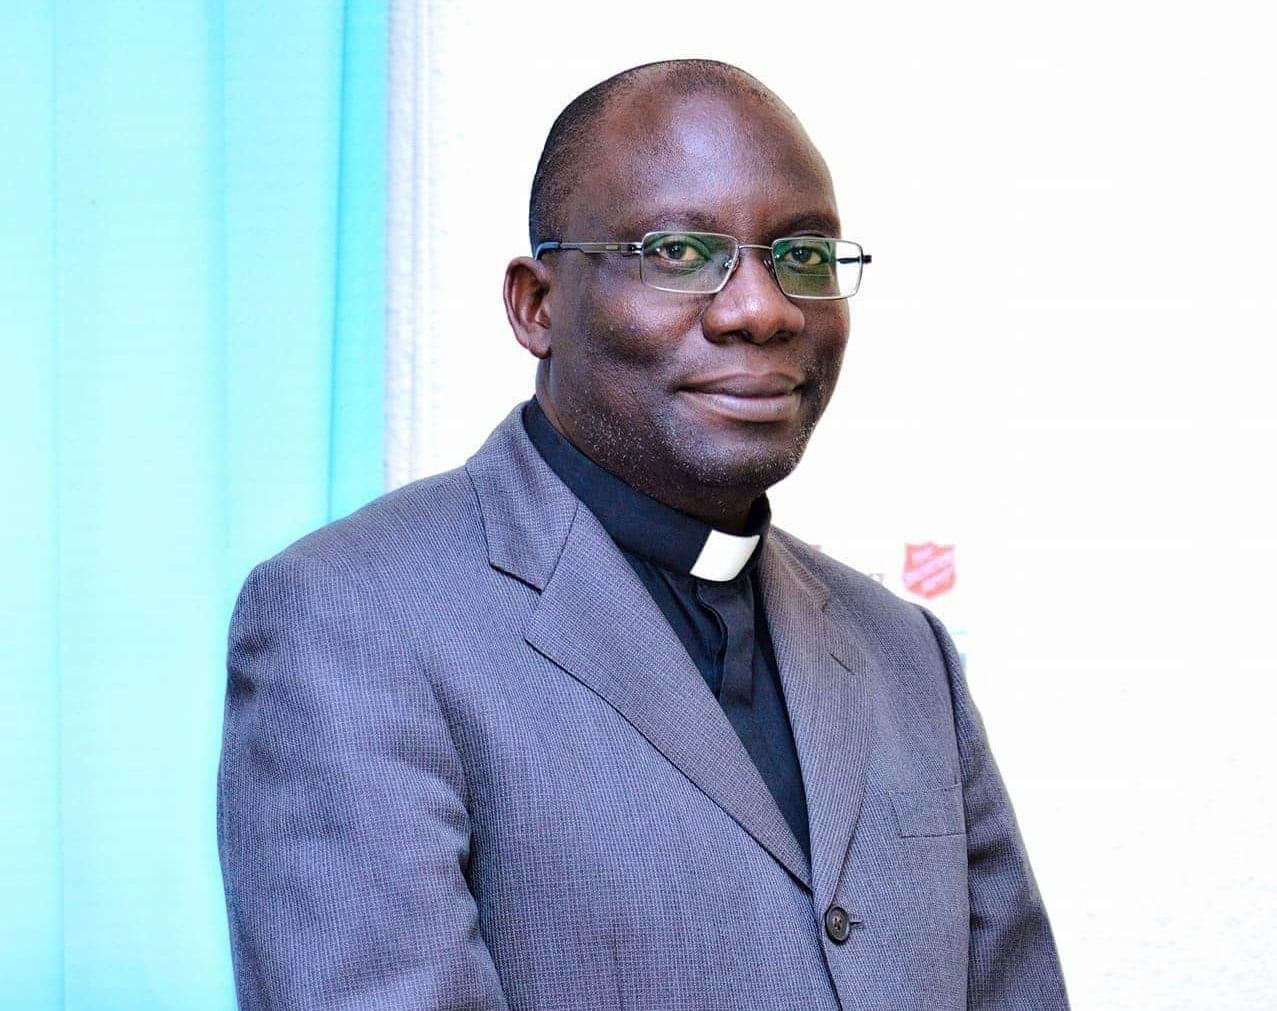 Church maintains that govt not sincere on Bill 10